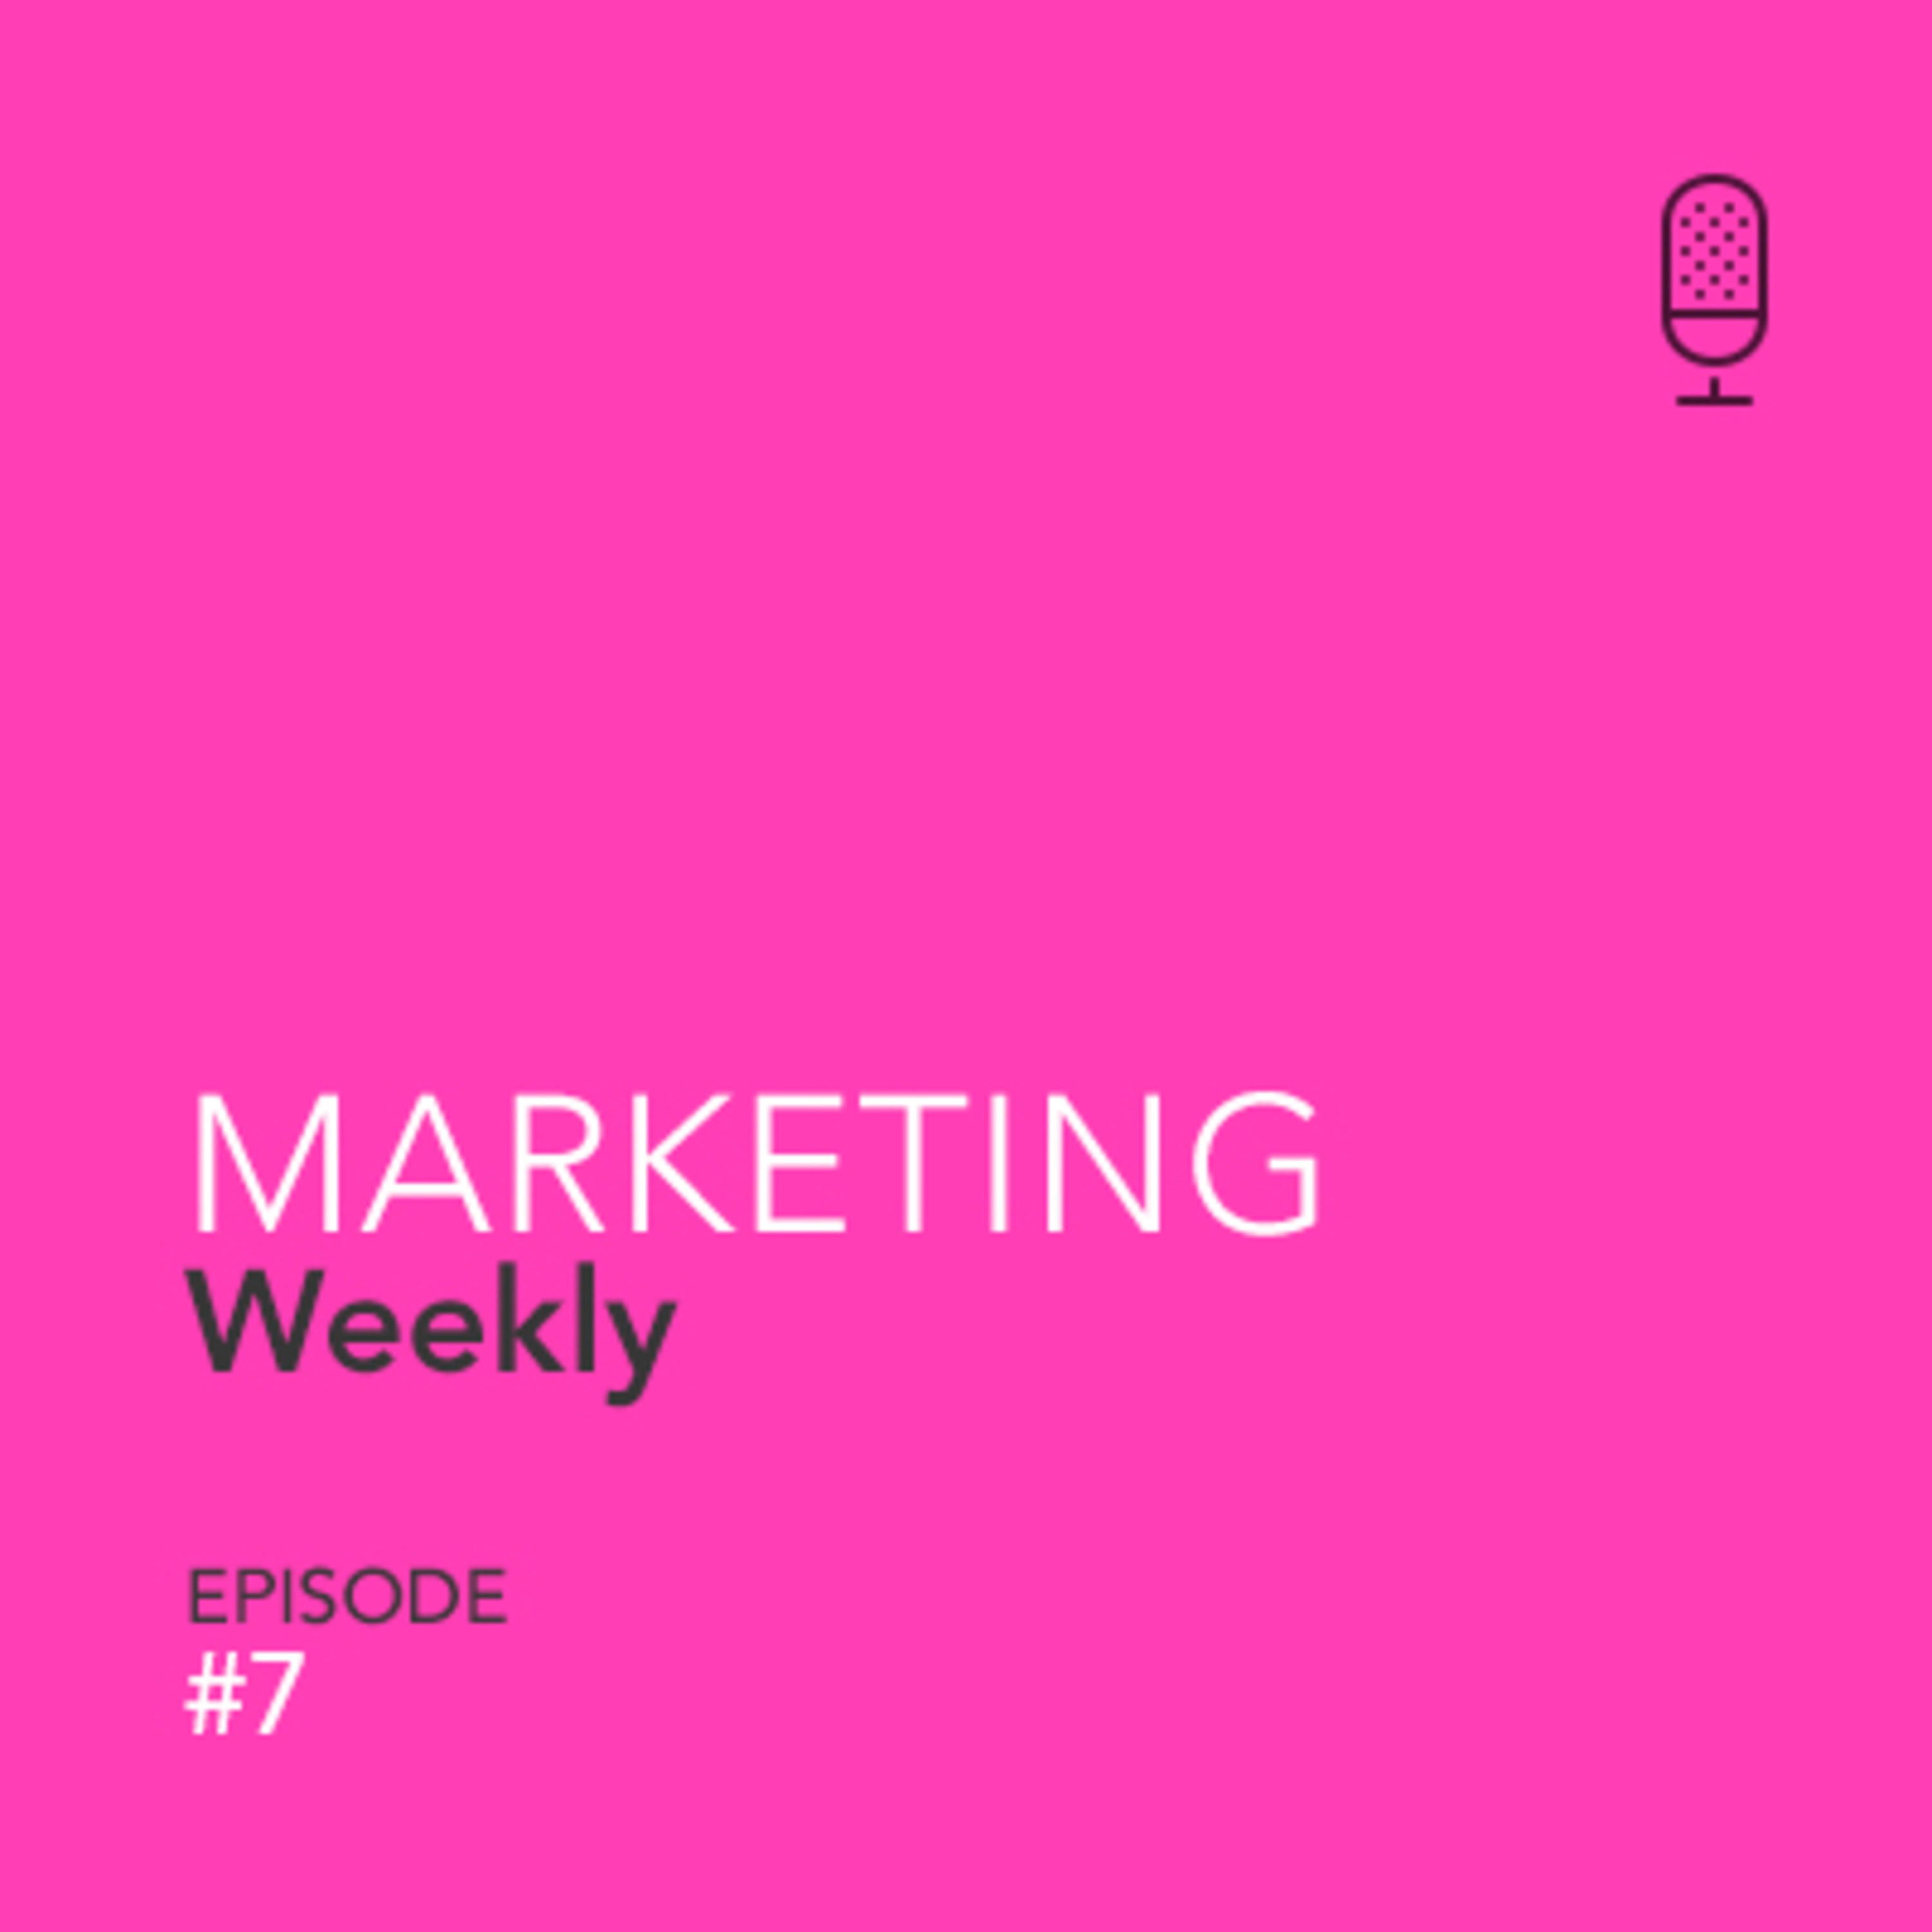 Marketing W7 - A Content Storyline, Micro content & New Social Media